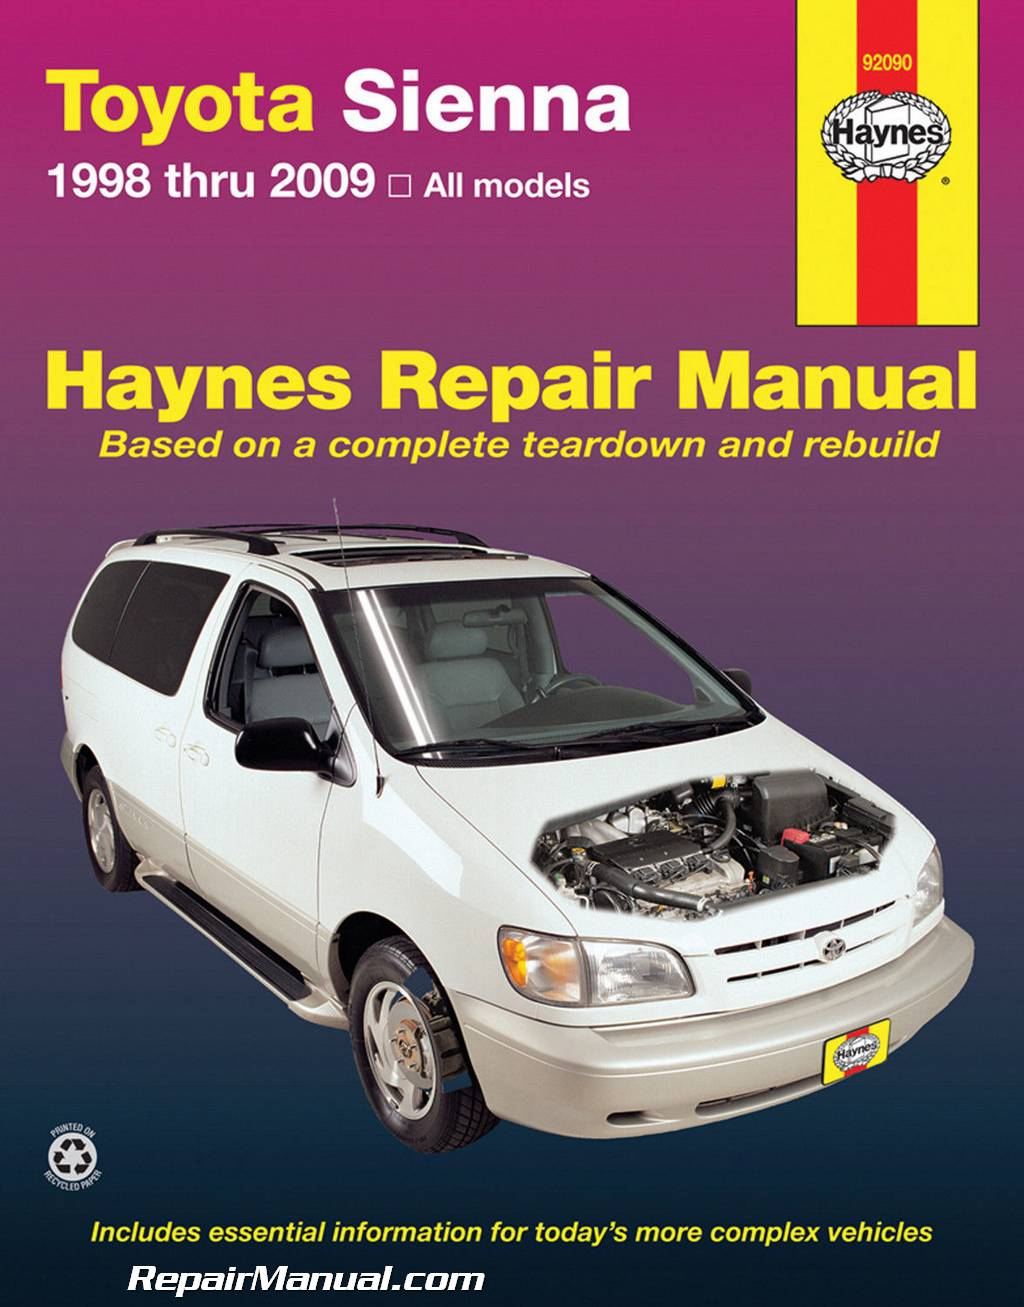 1998 Toyota Sienna - Owner s Manual (248 pages)